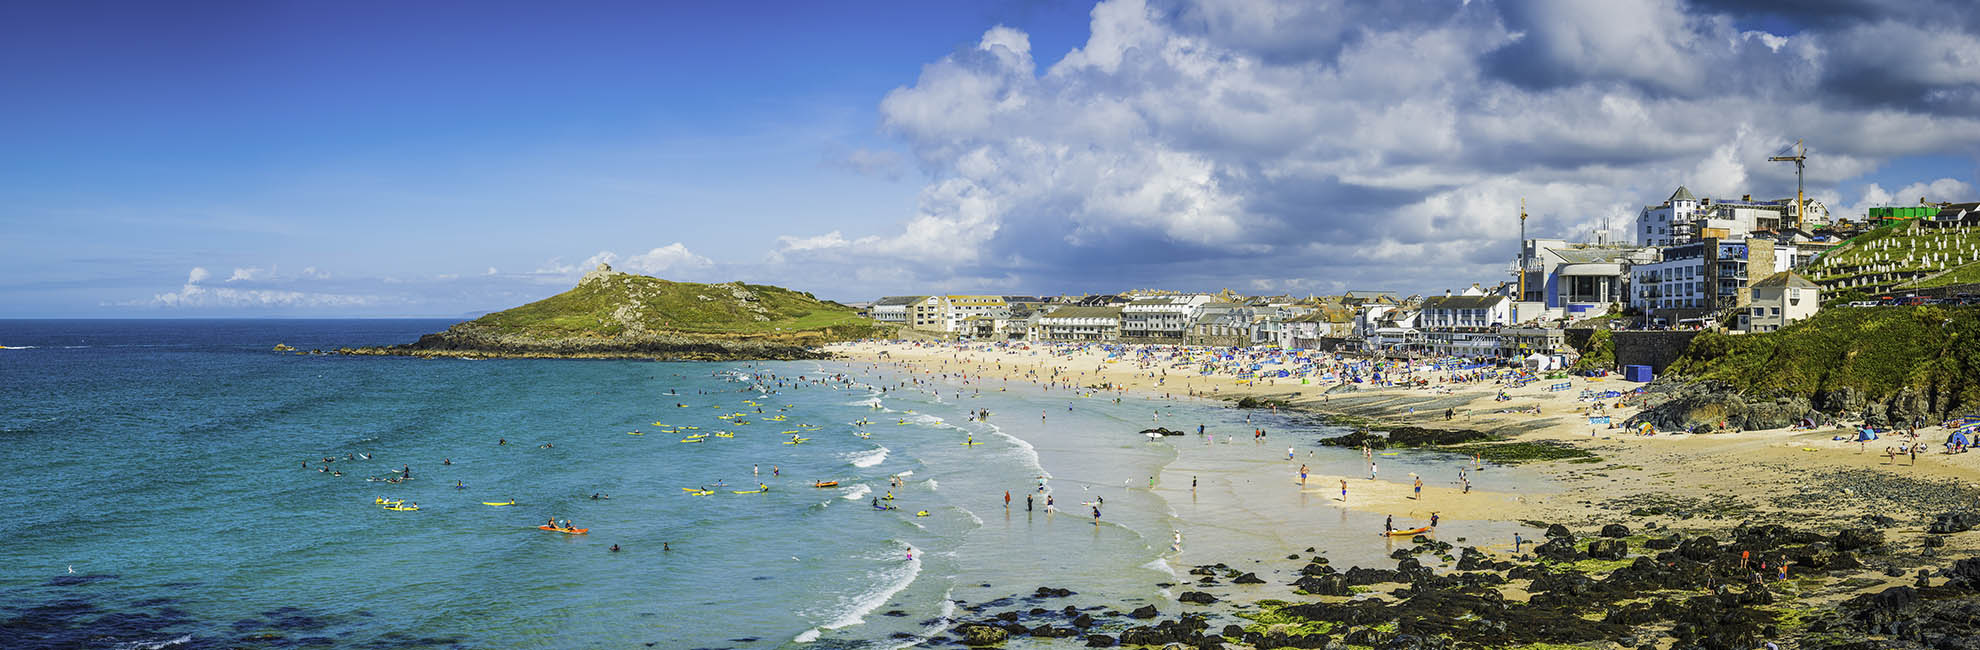 Surfers in the bay at St Ives